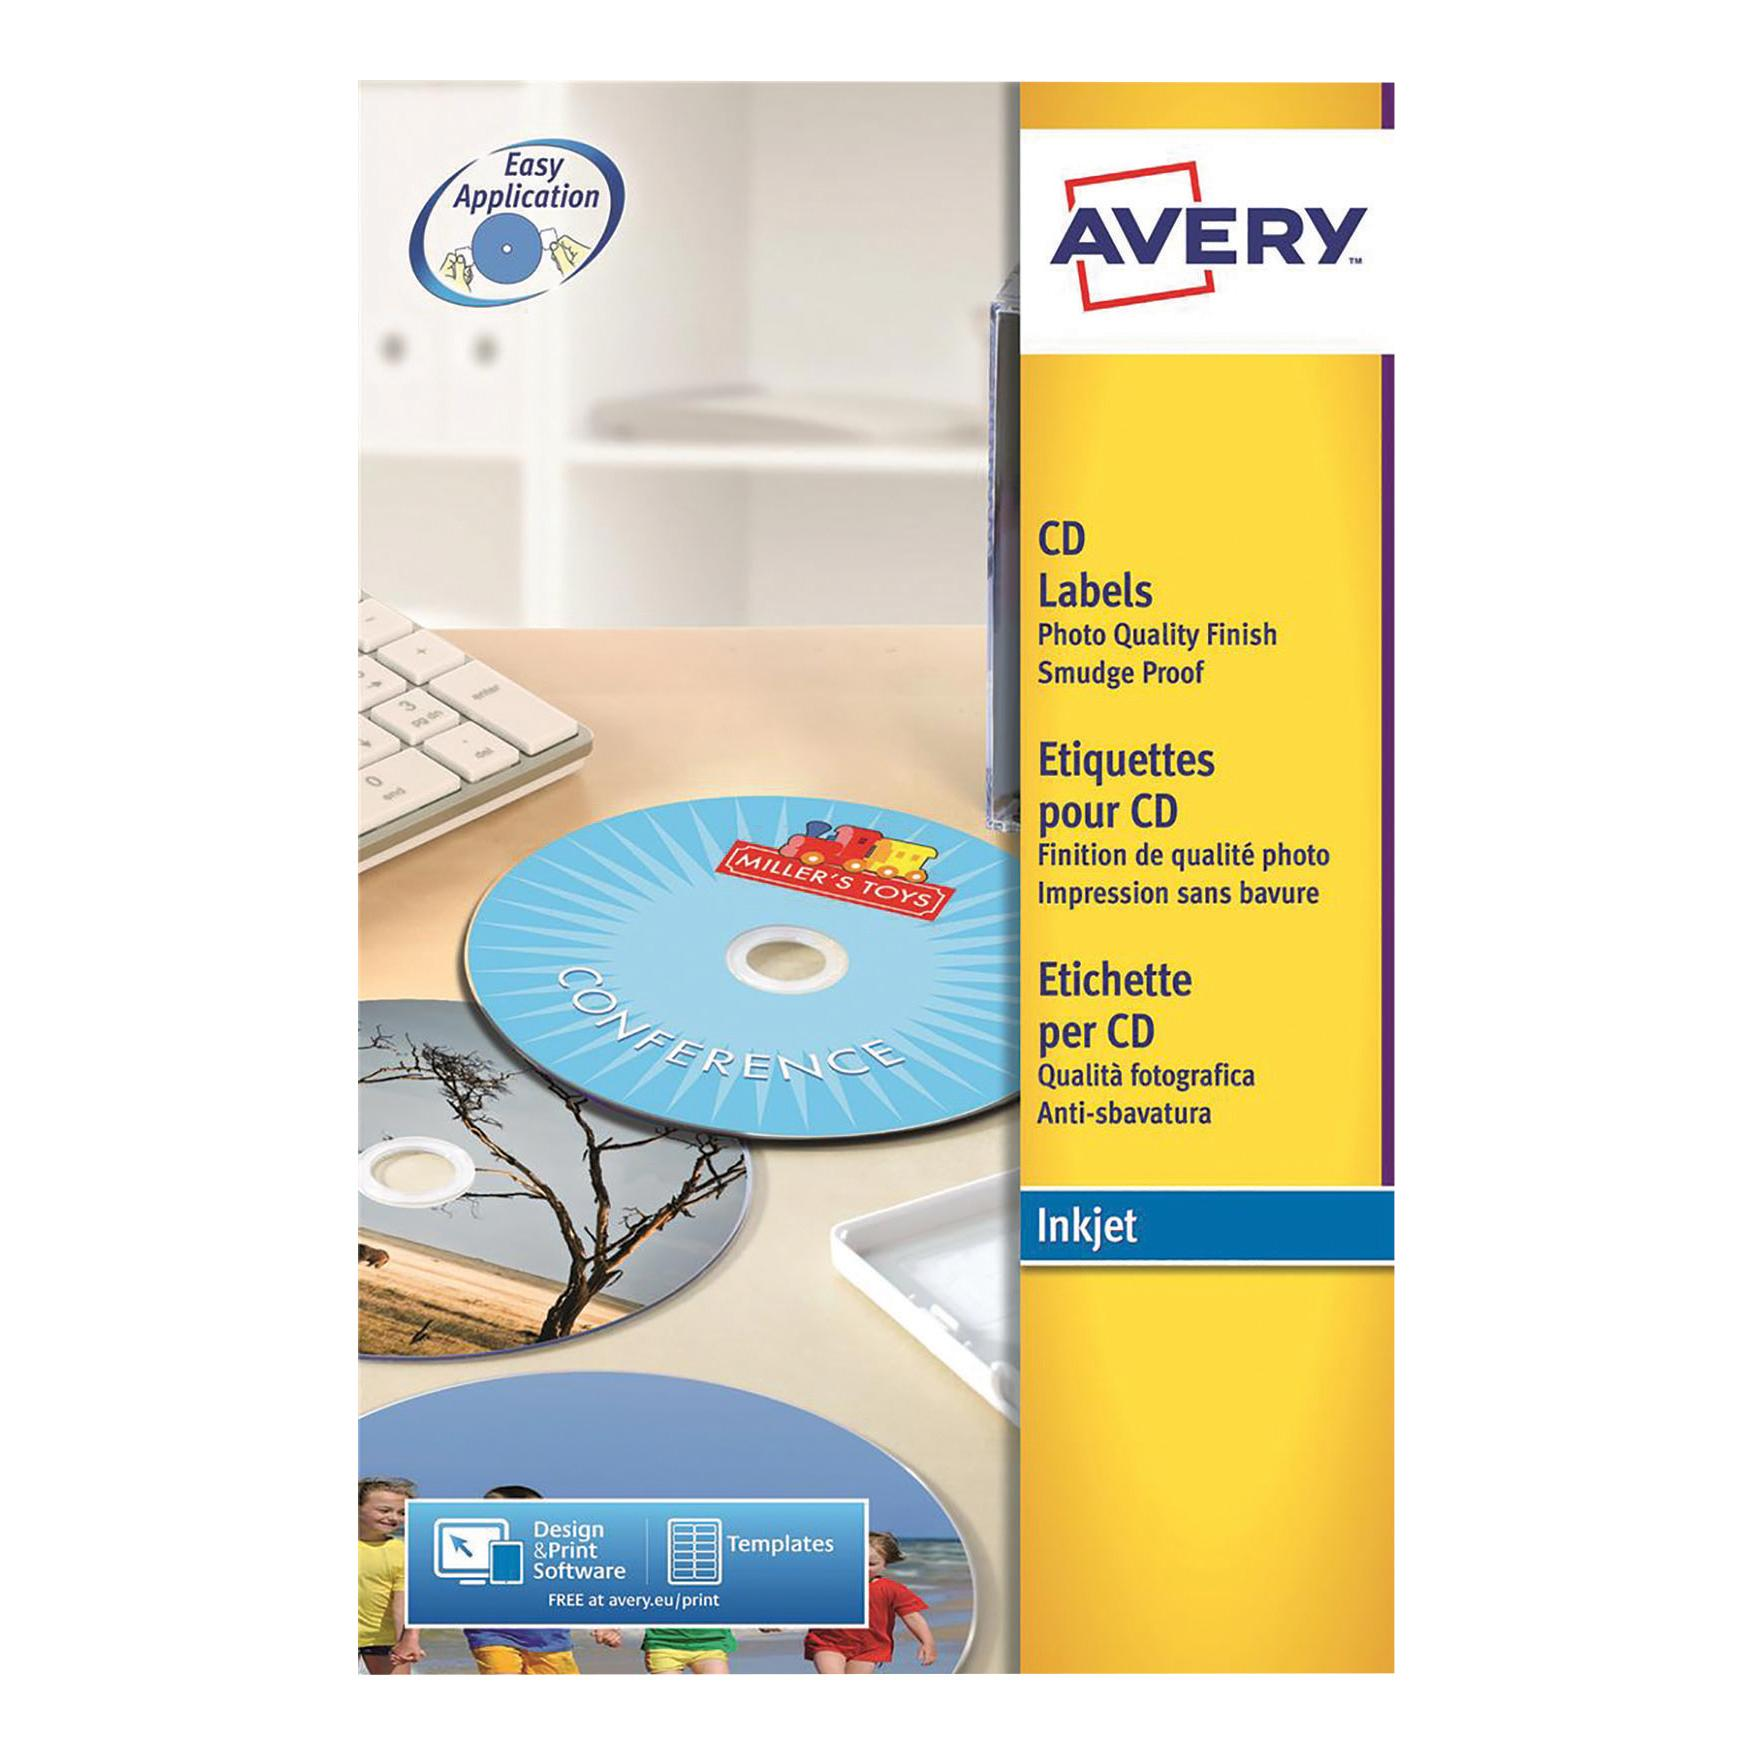 Avery L7760 Cddvd A4 Label Template